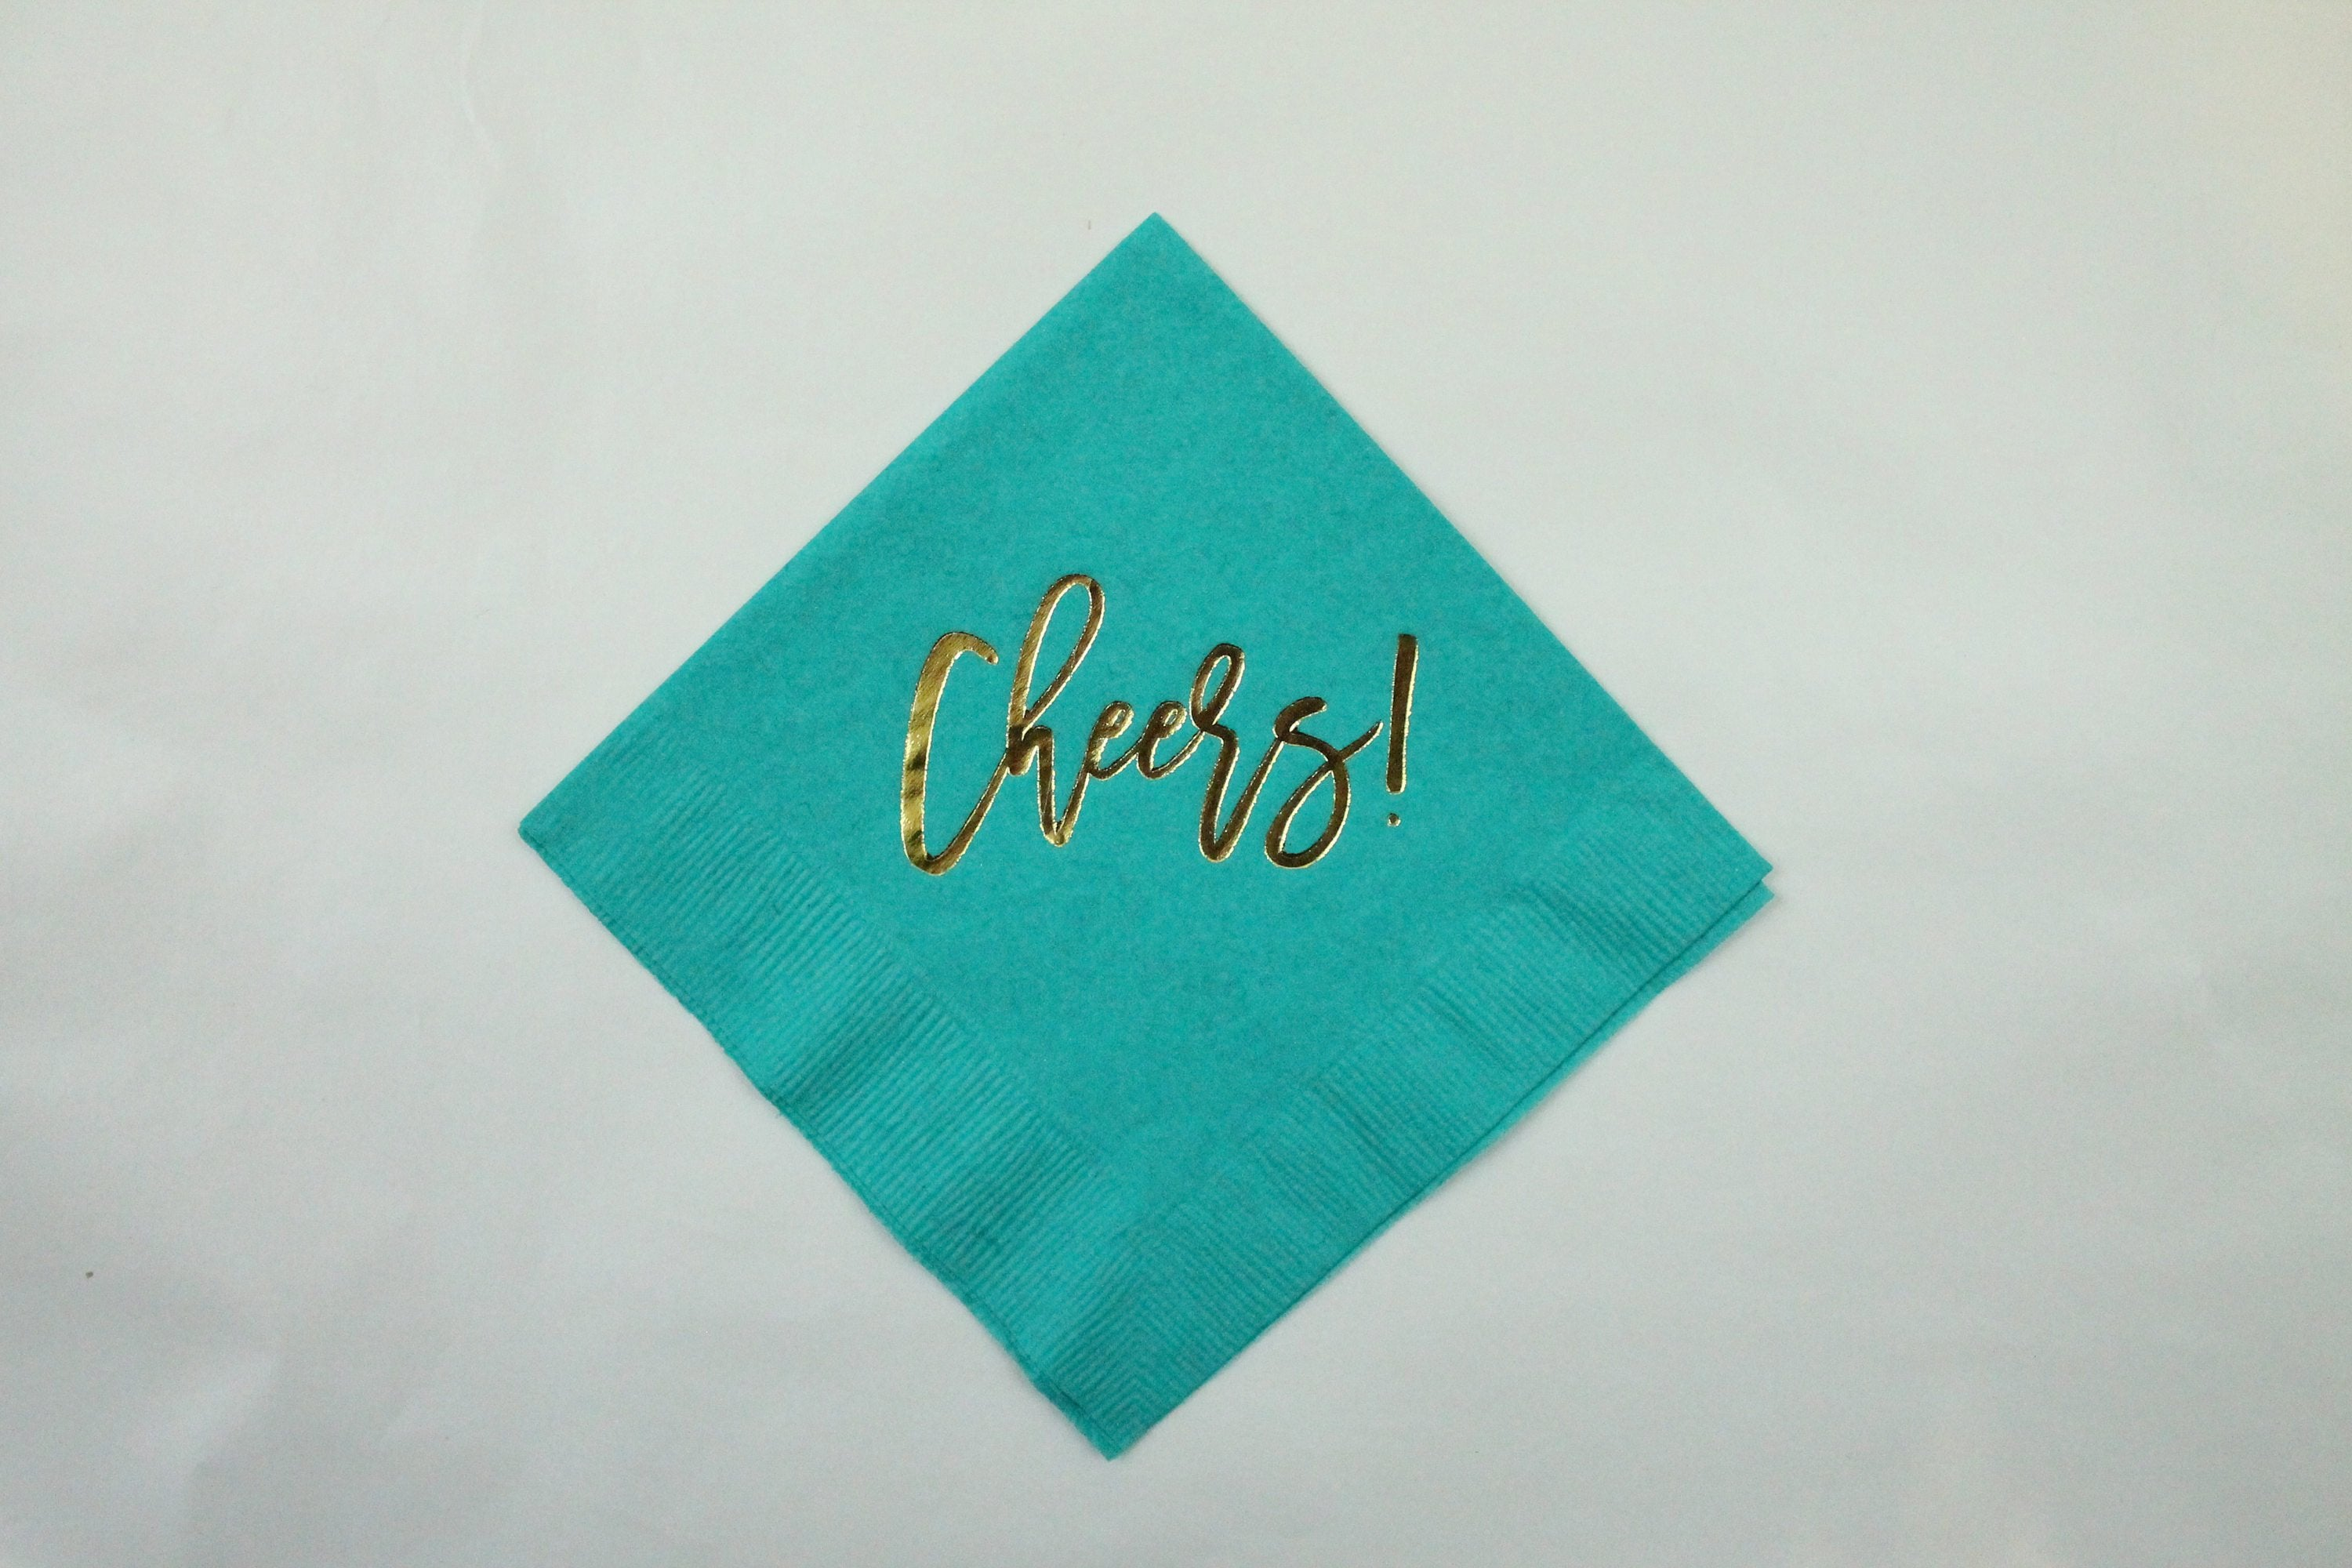 Cheers! Cocktail Napkins